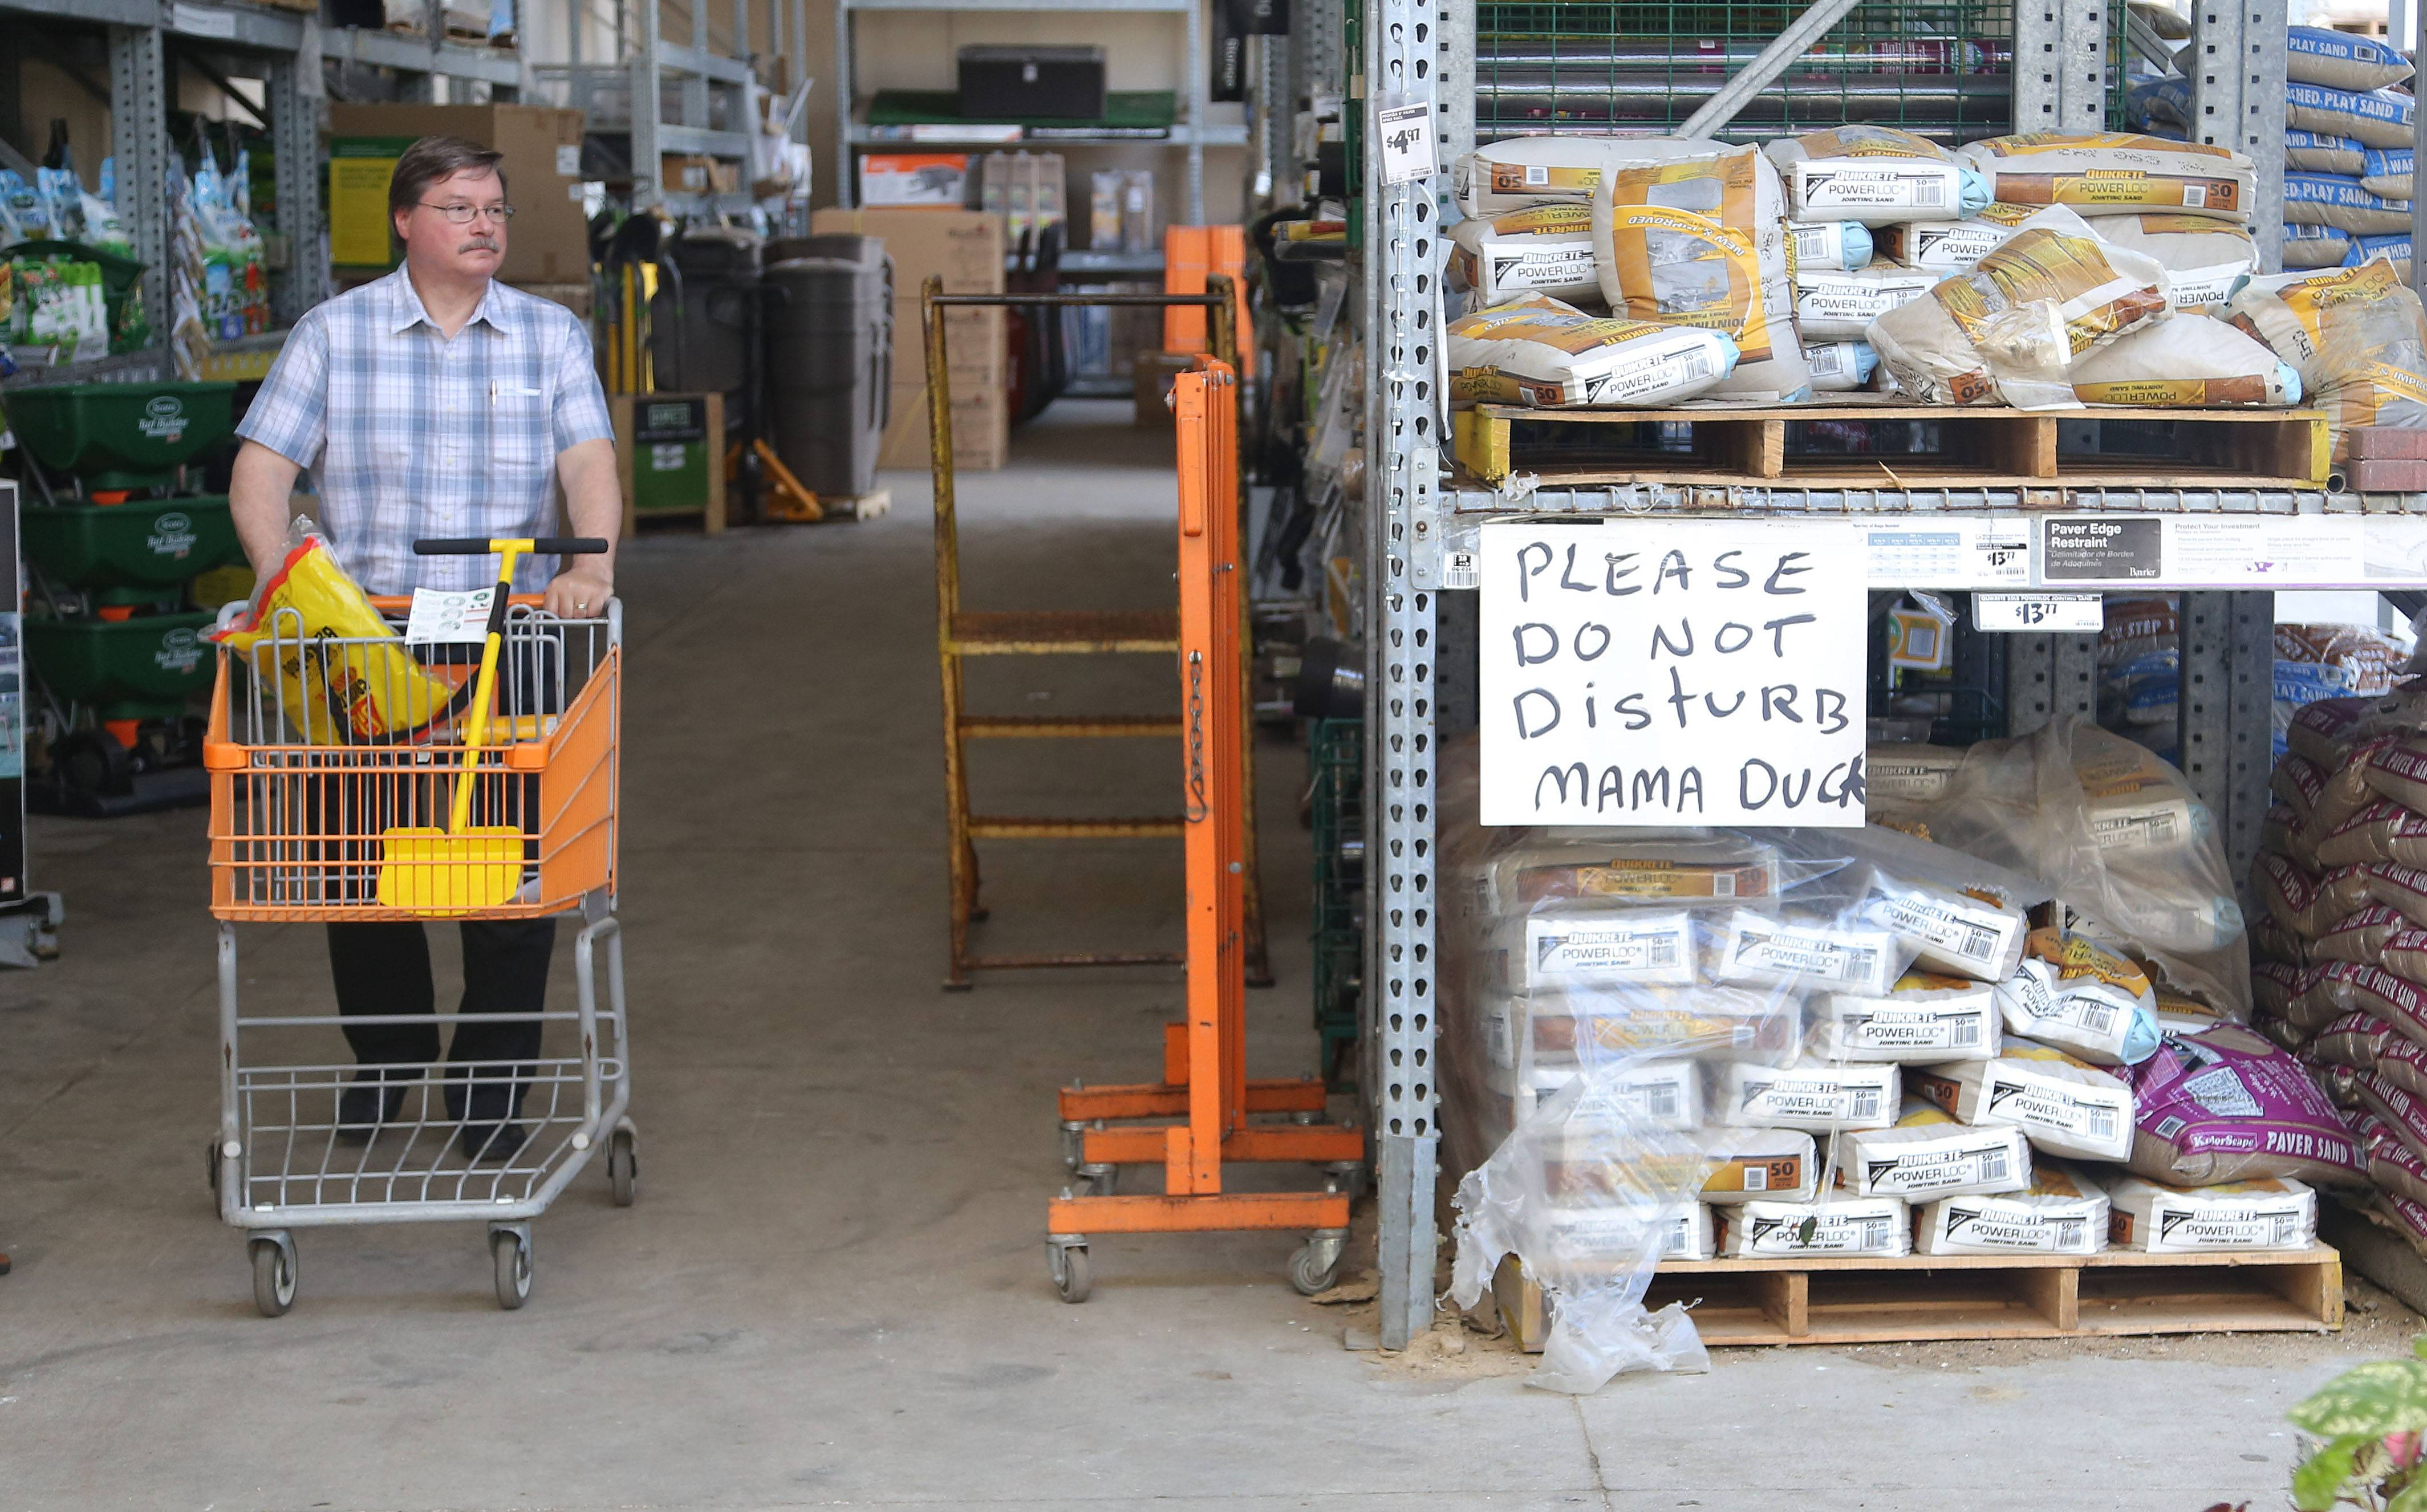 A Gurnee Home Depot shopper passes a section of the garden department where a mother duck laid her eggs in a pallet of paver block sand bags. Employees have put up a sign to protect her and are feeding her until her ducklings hatch.